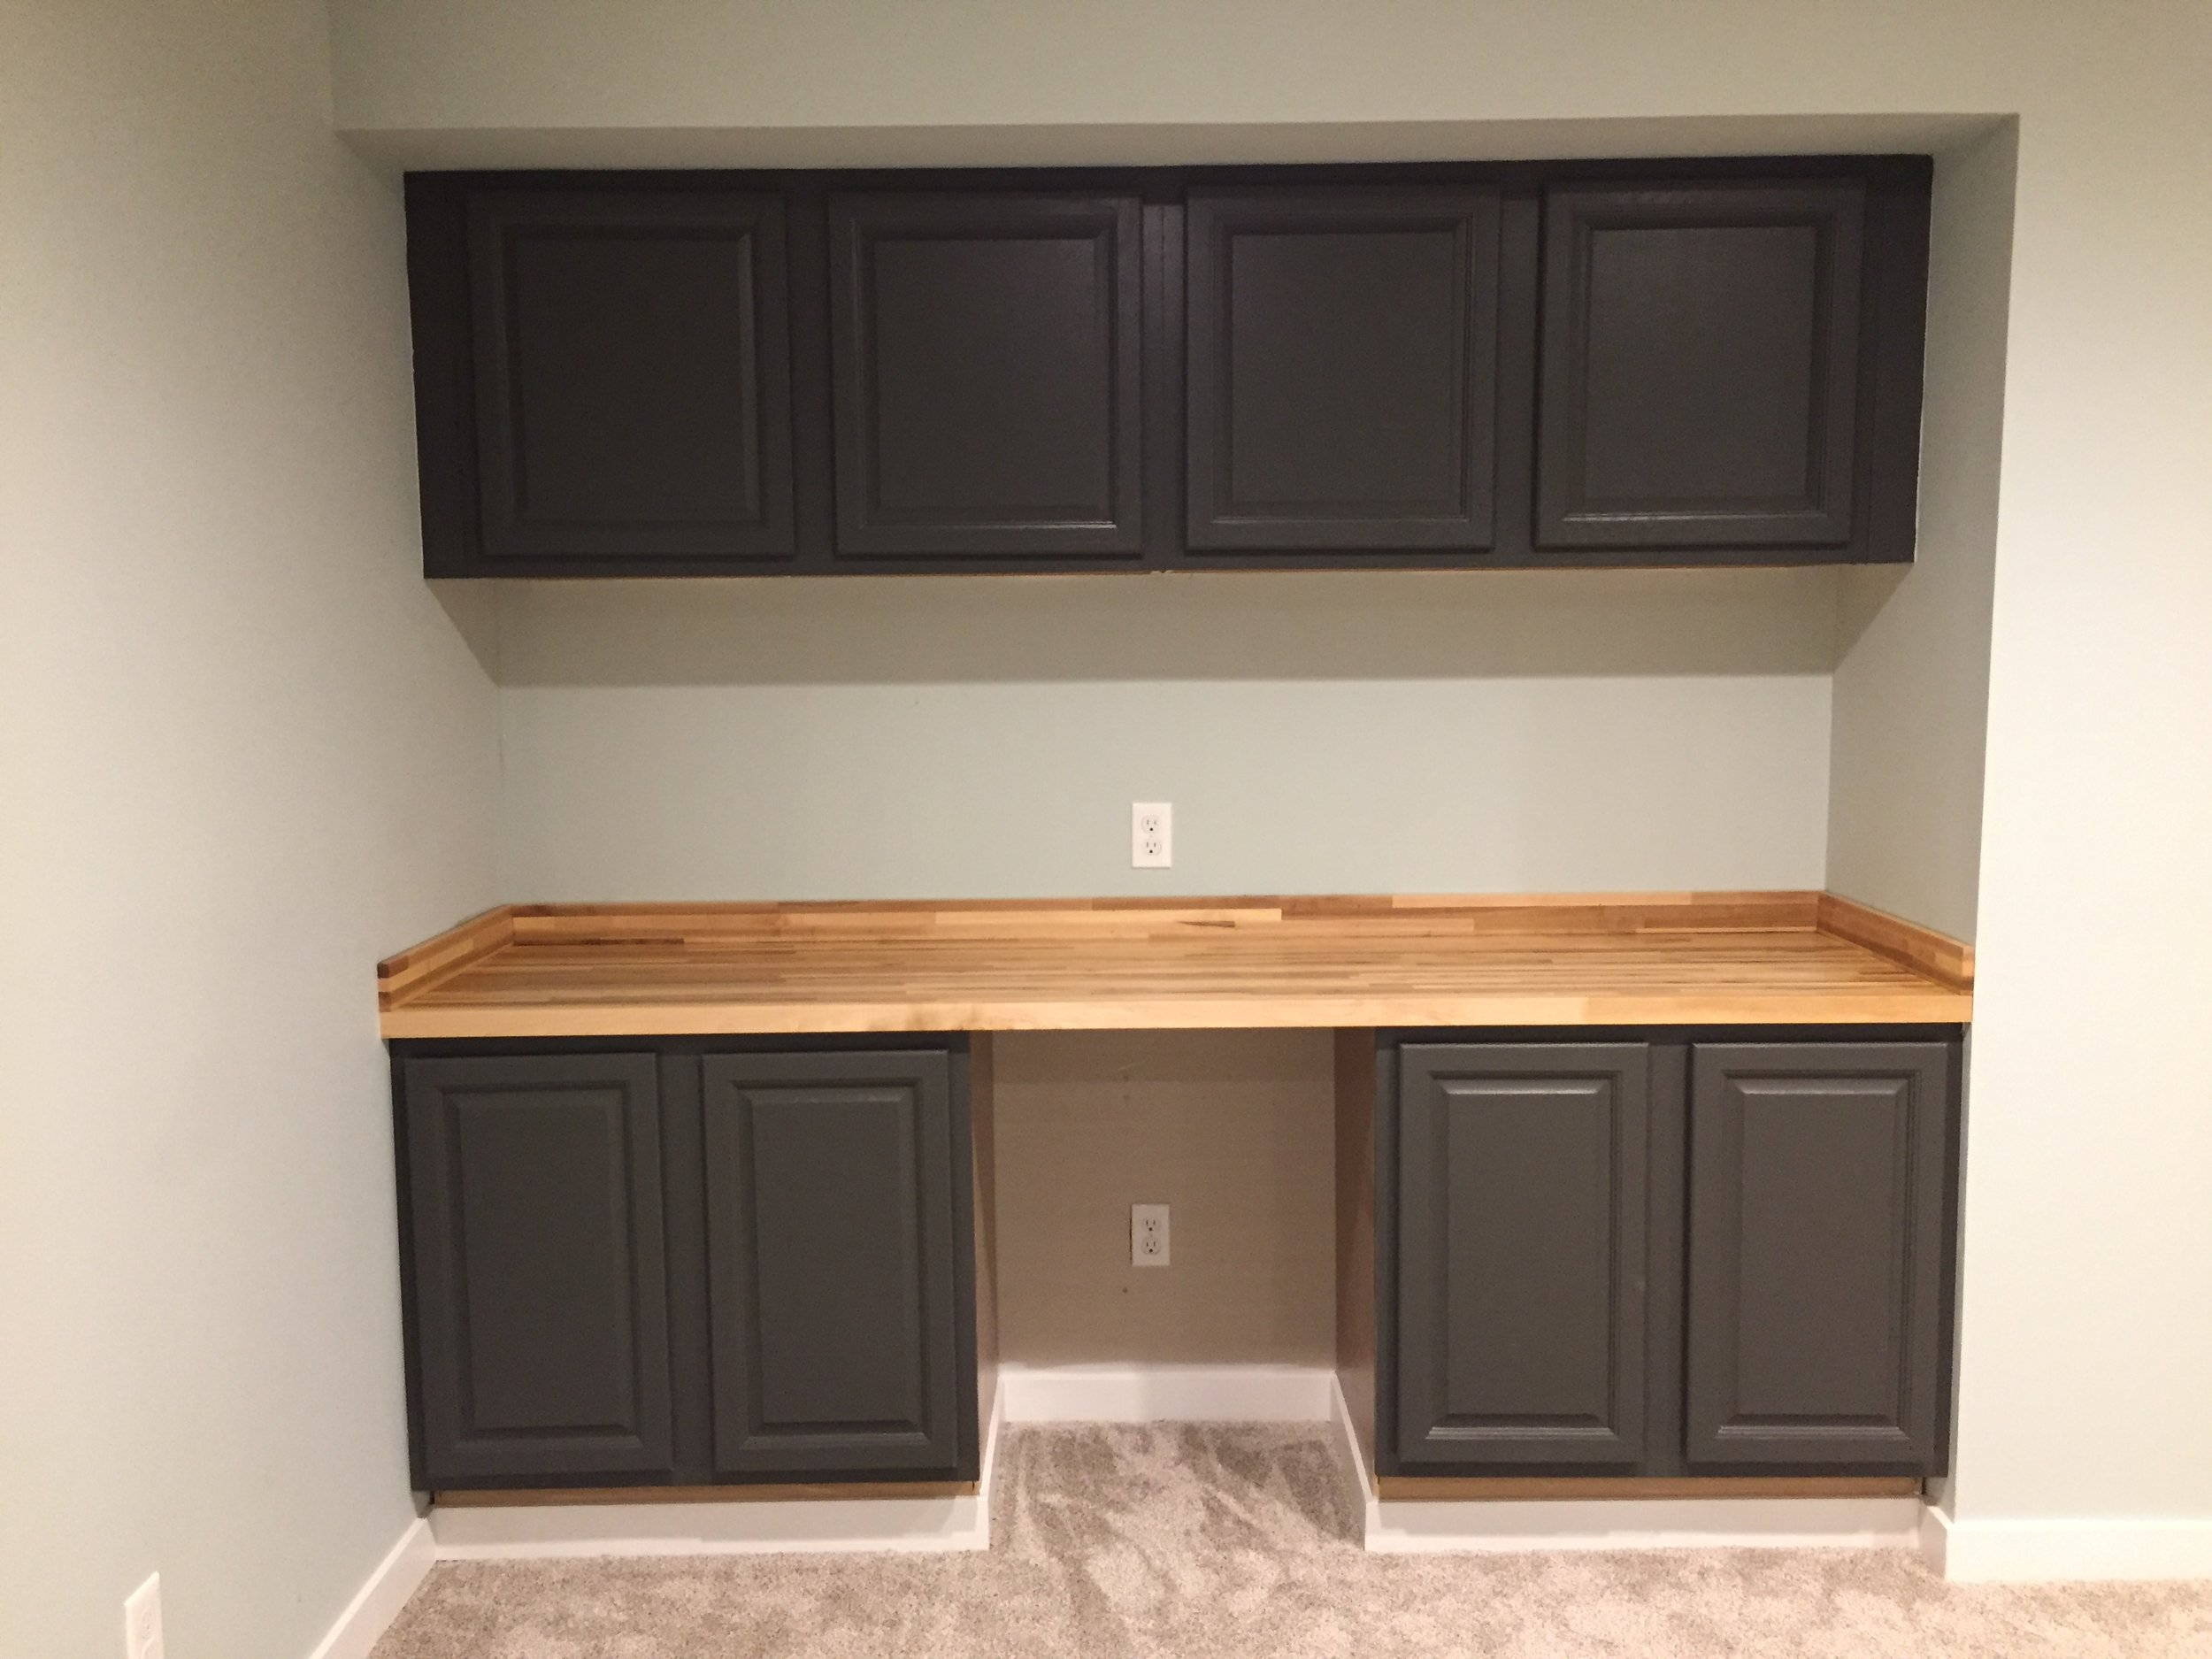 SW Urbane Bronze Cabinets with Butcher Block Countertop